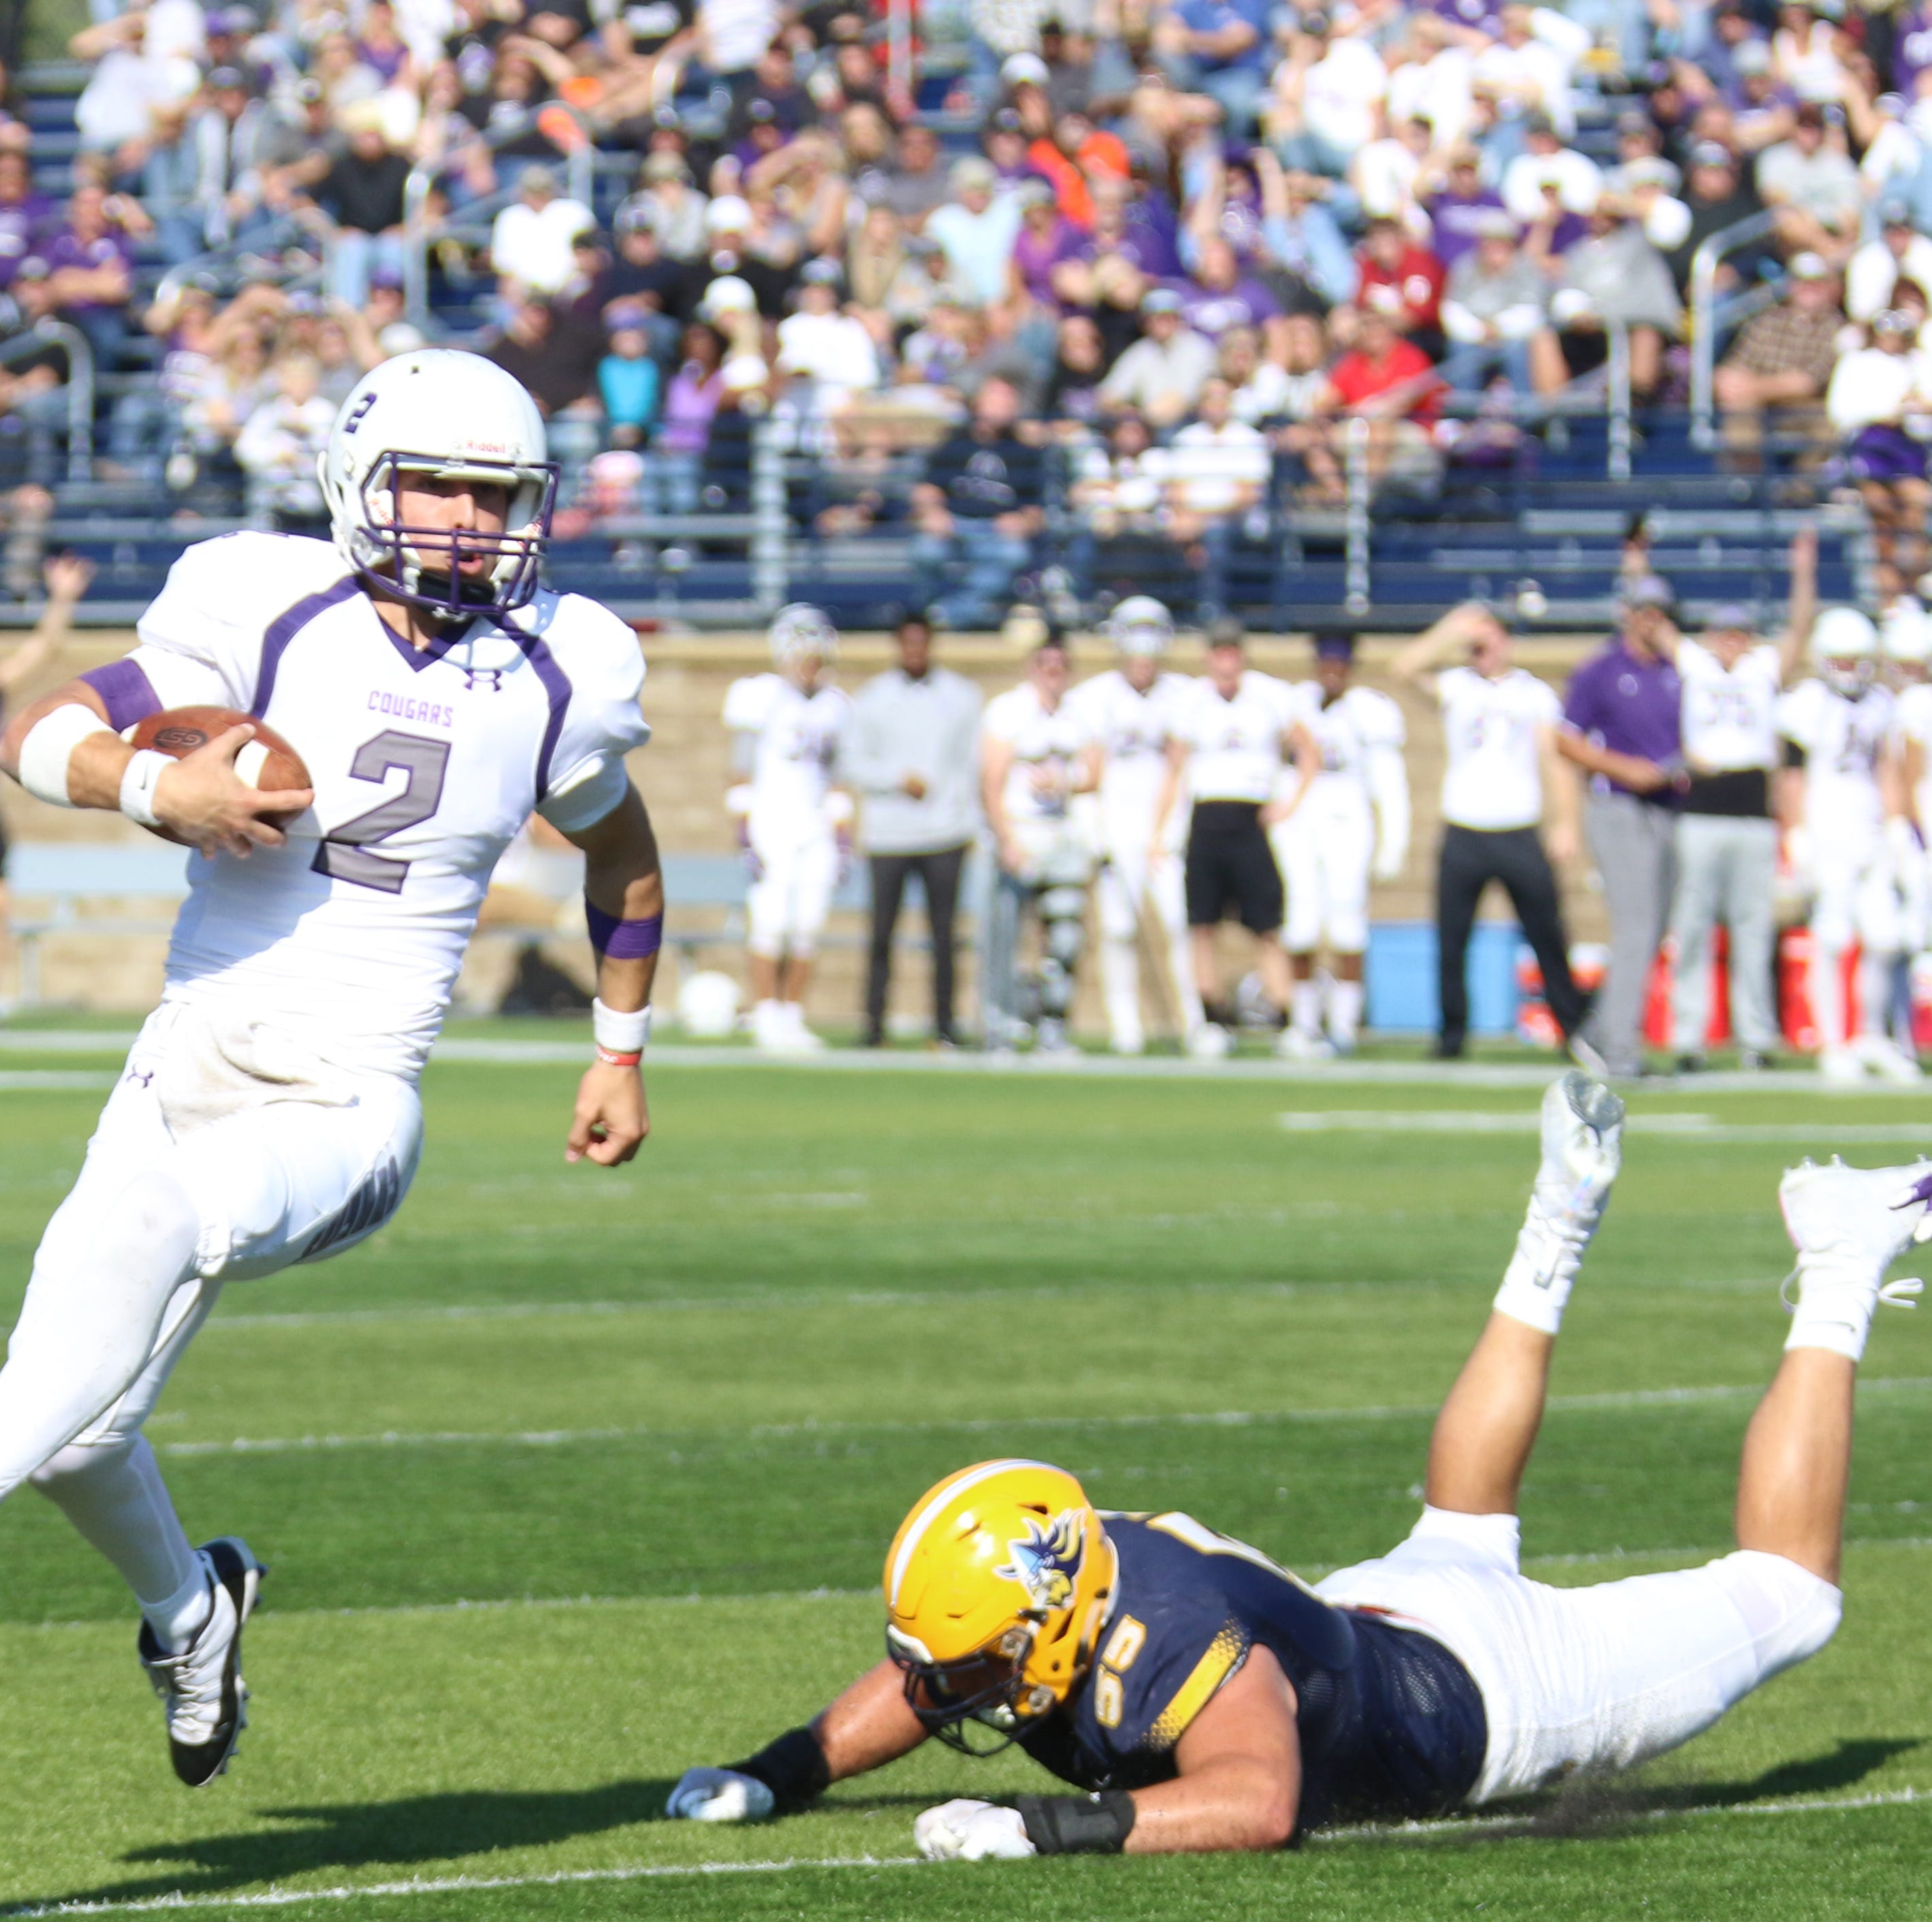 University of Sioux Falls retains Key to the City with rout of Augustana